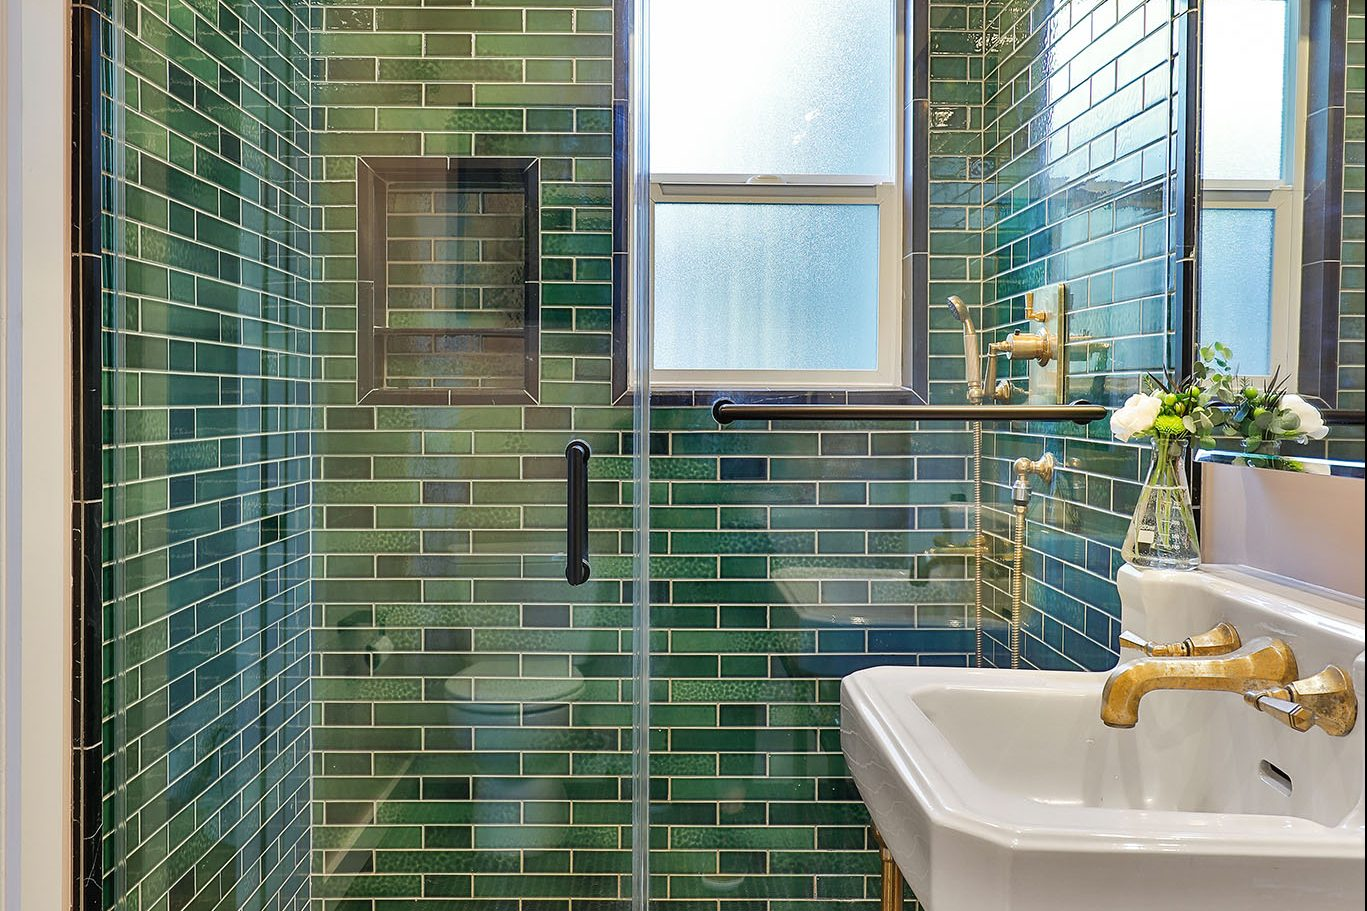 SF Real Estate - bathroom with green subway tile